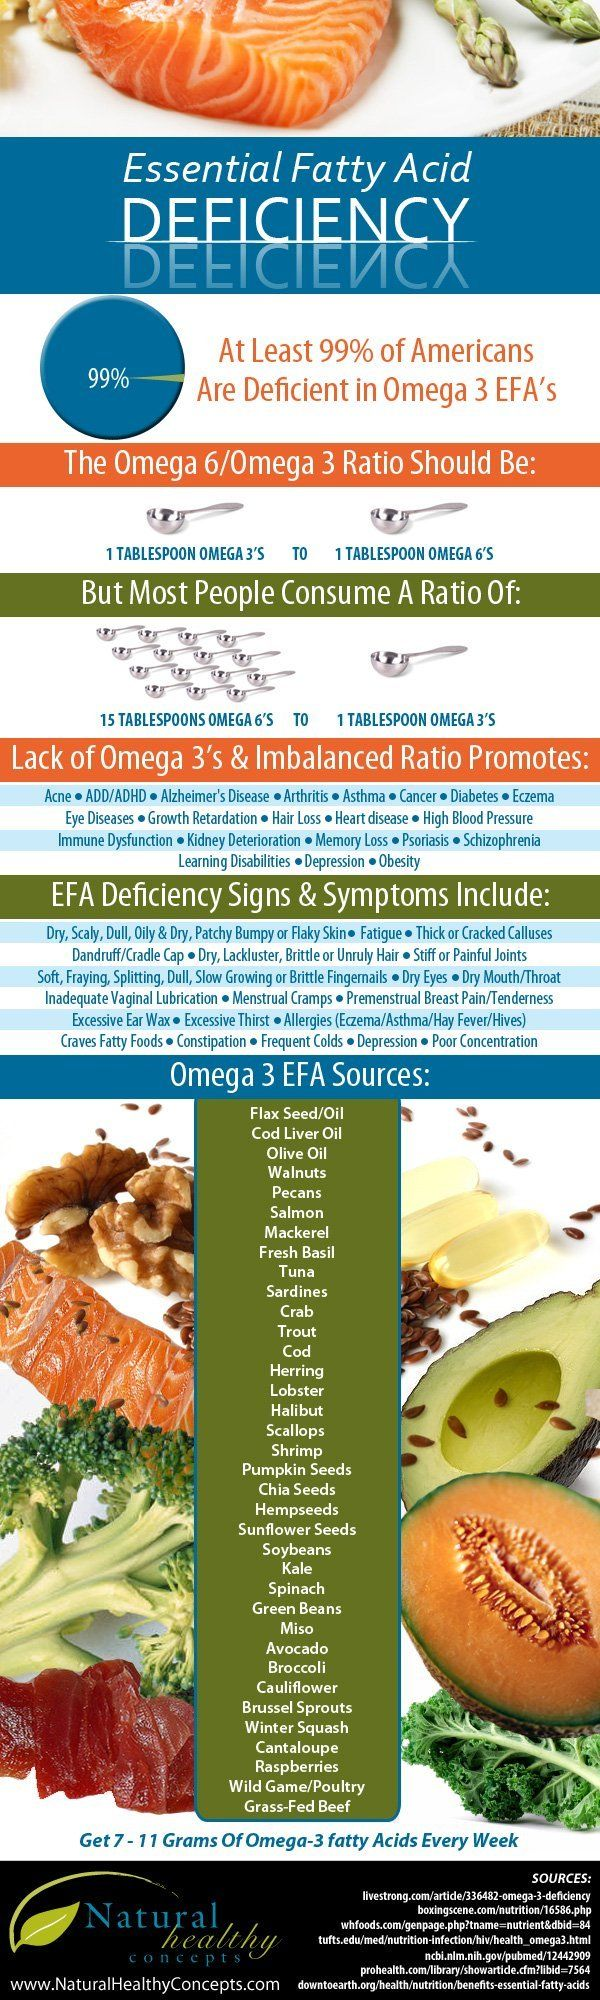 Essential Fatty Acid Deficiency Infographic